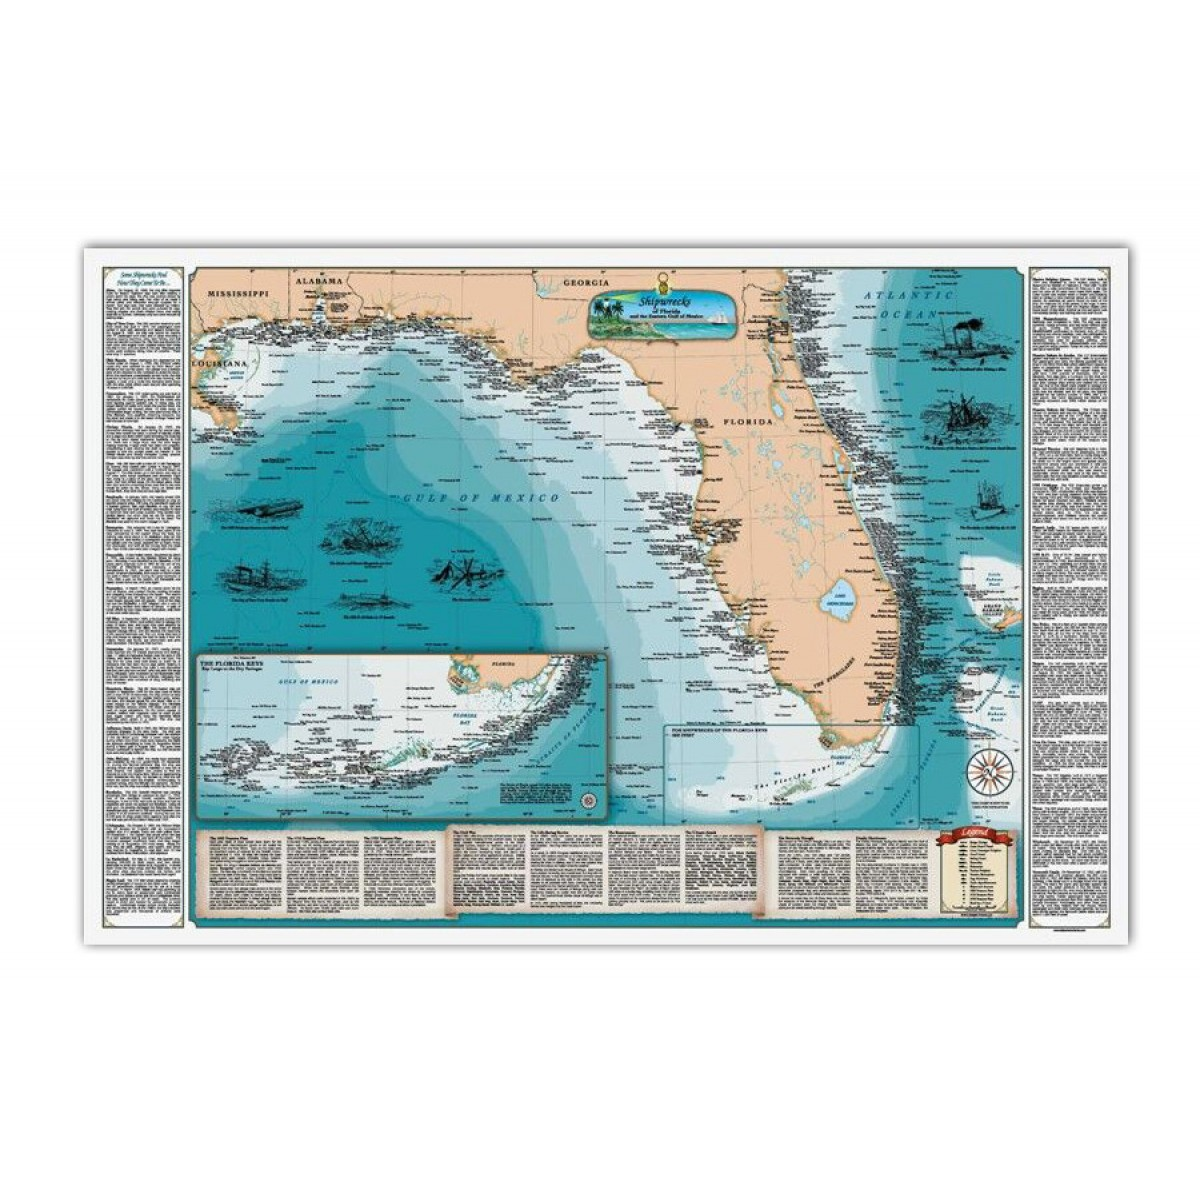 fl and the gulf of mexico shipwreck map kellyco